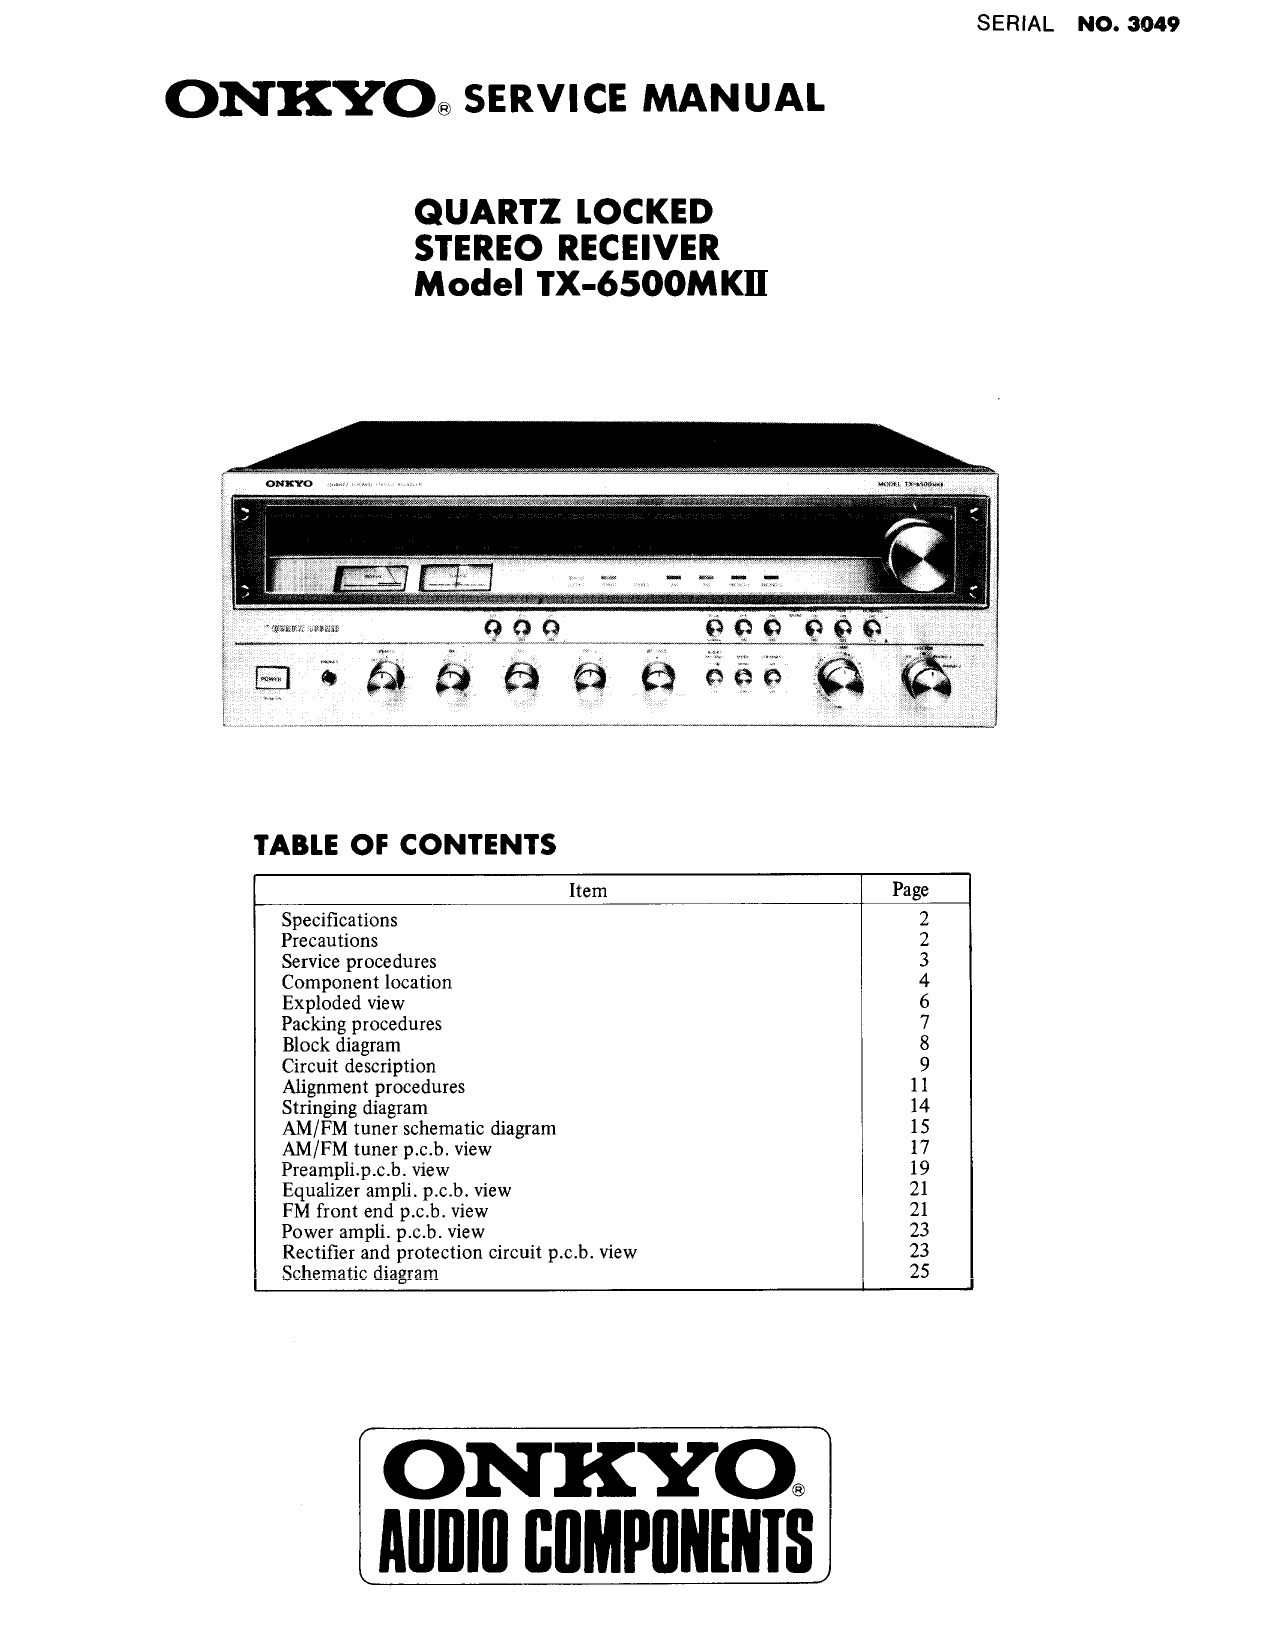 Download free pdf for Onkyo TX-904 Receiver manual